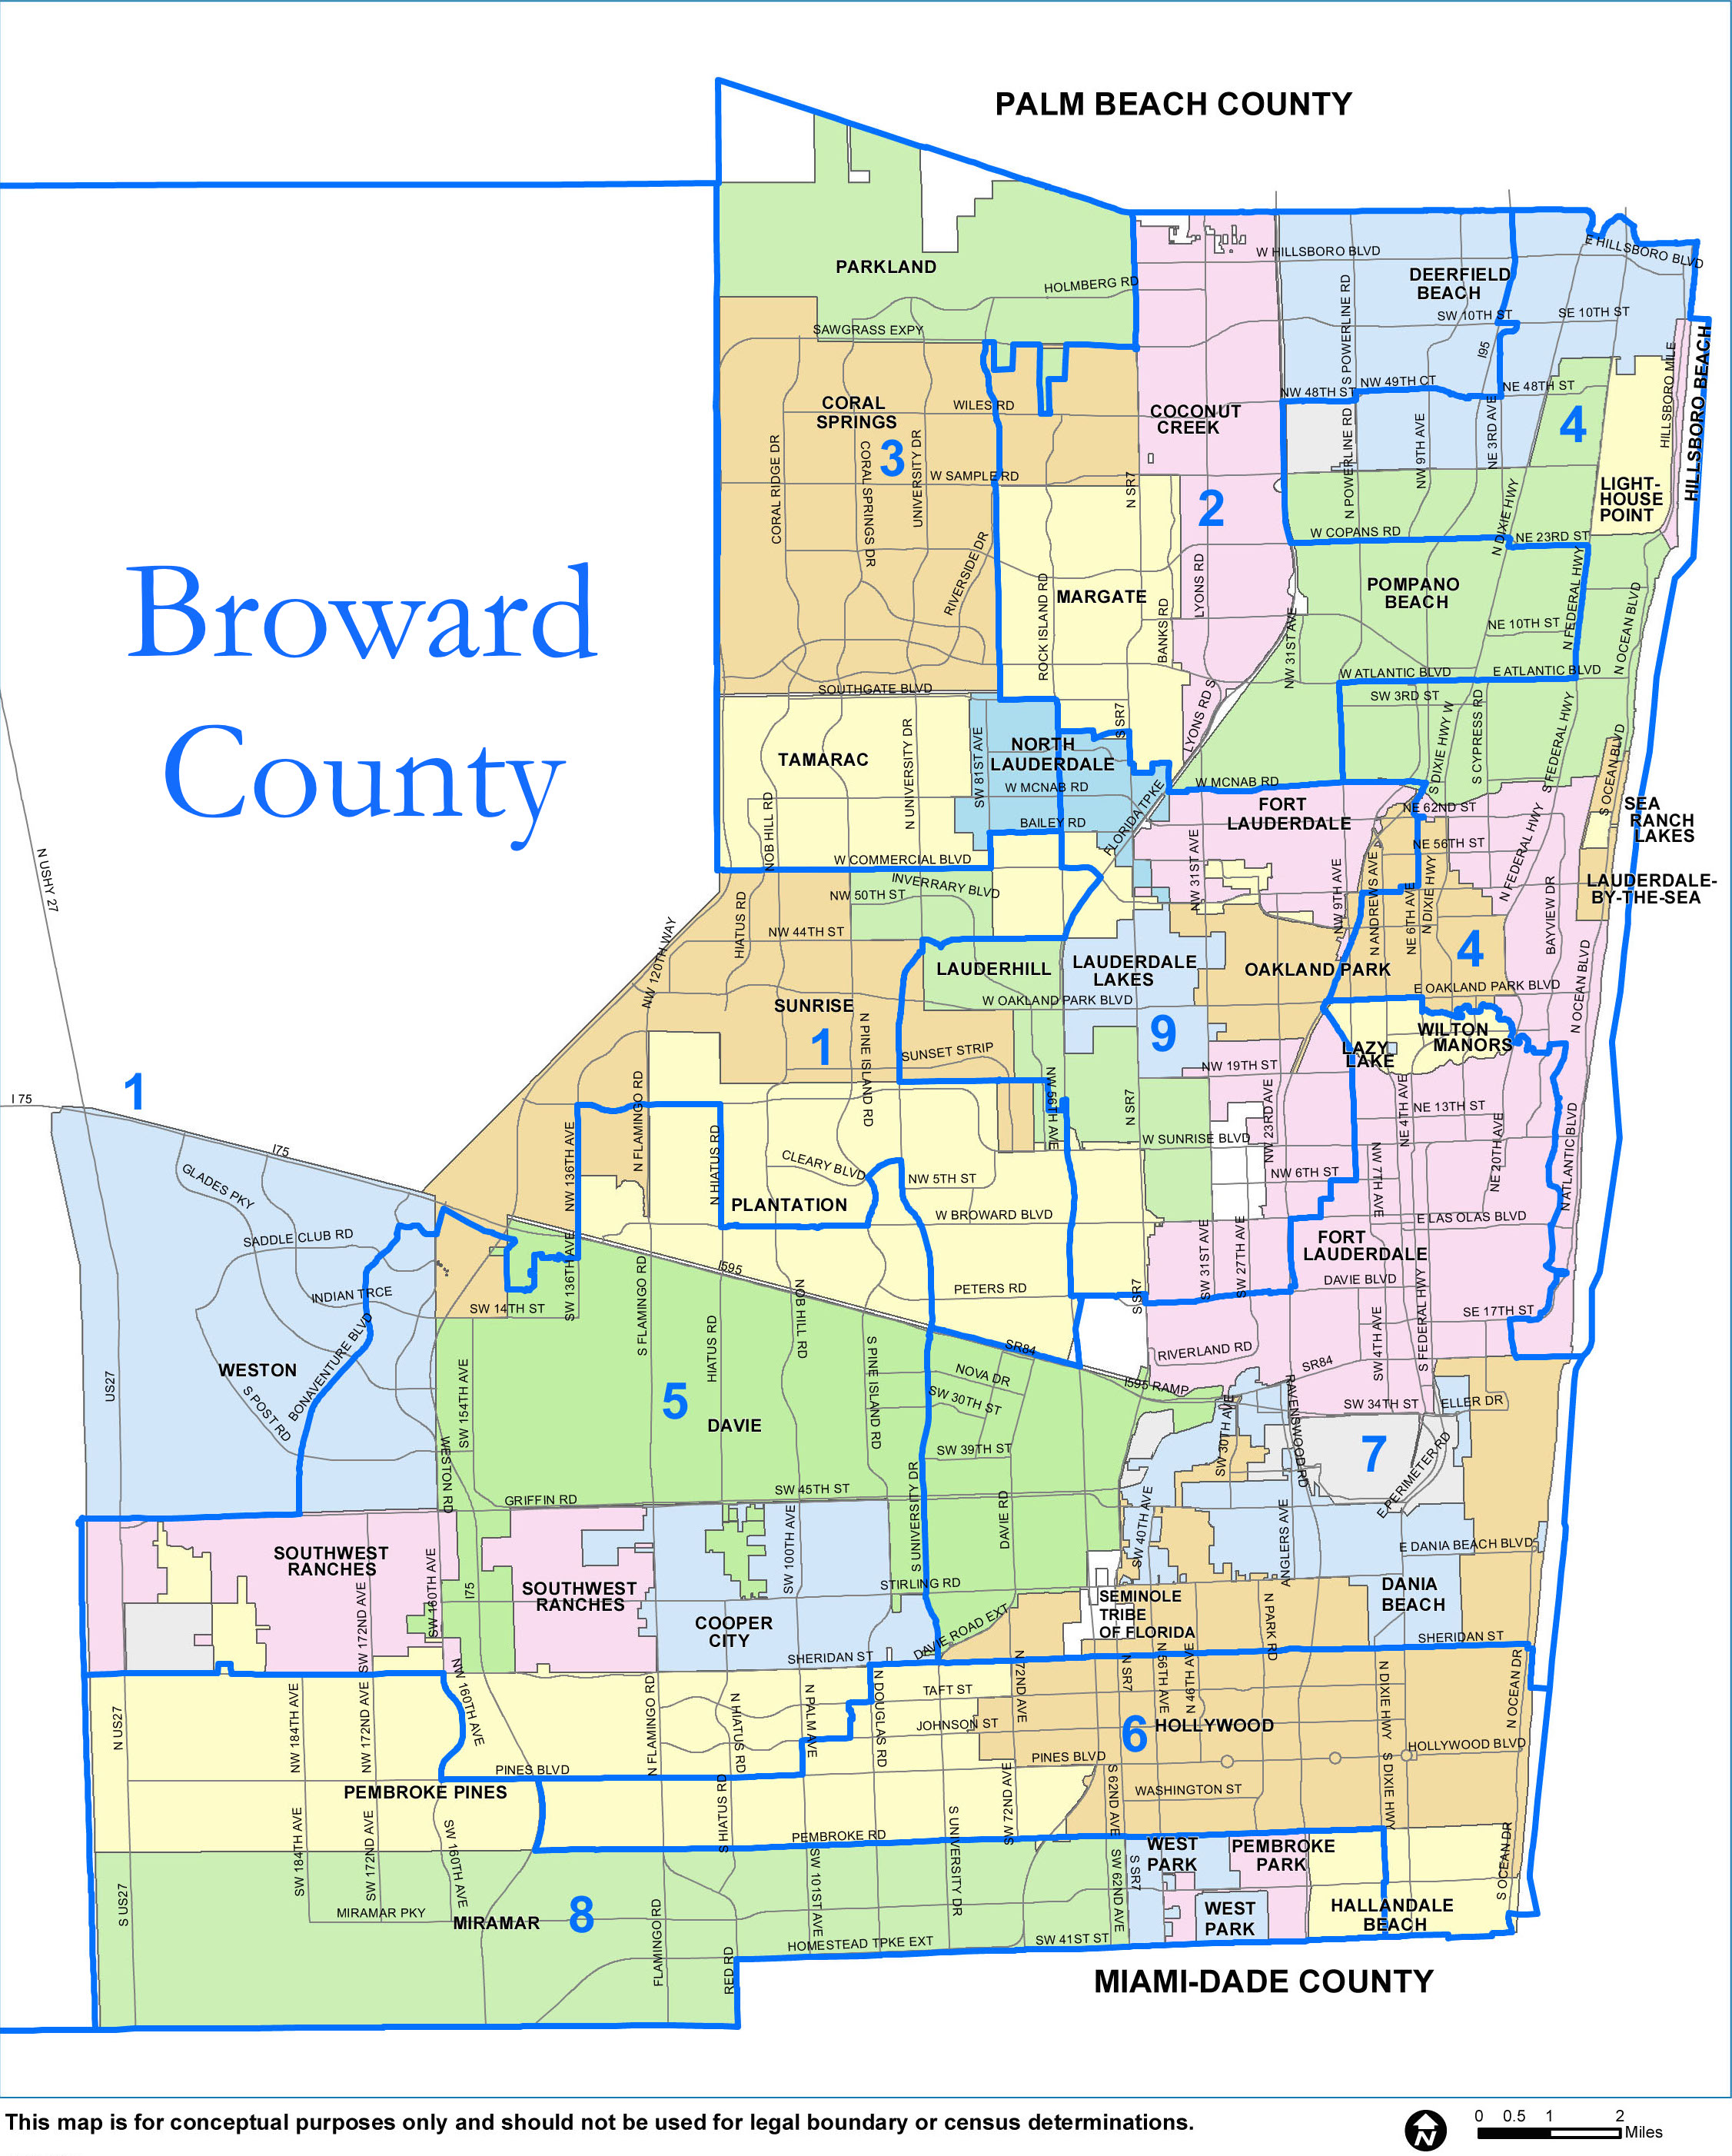 Broward County Map - Check out the Counties of Broward